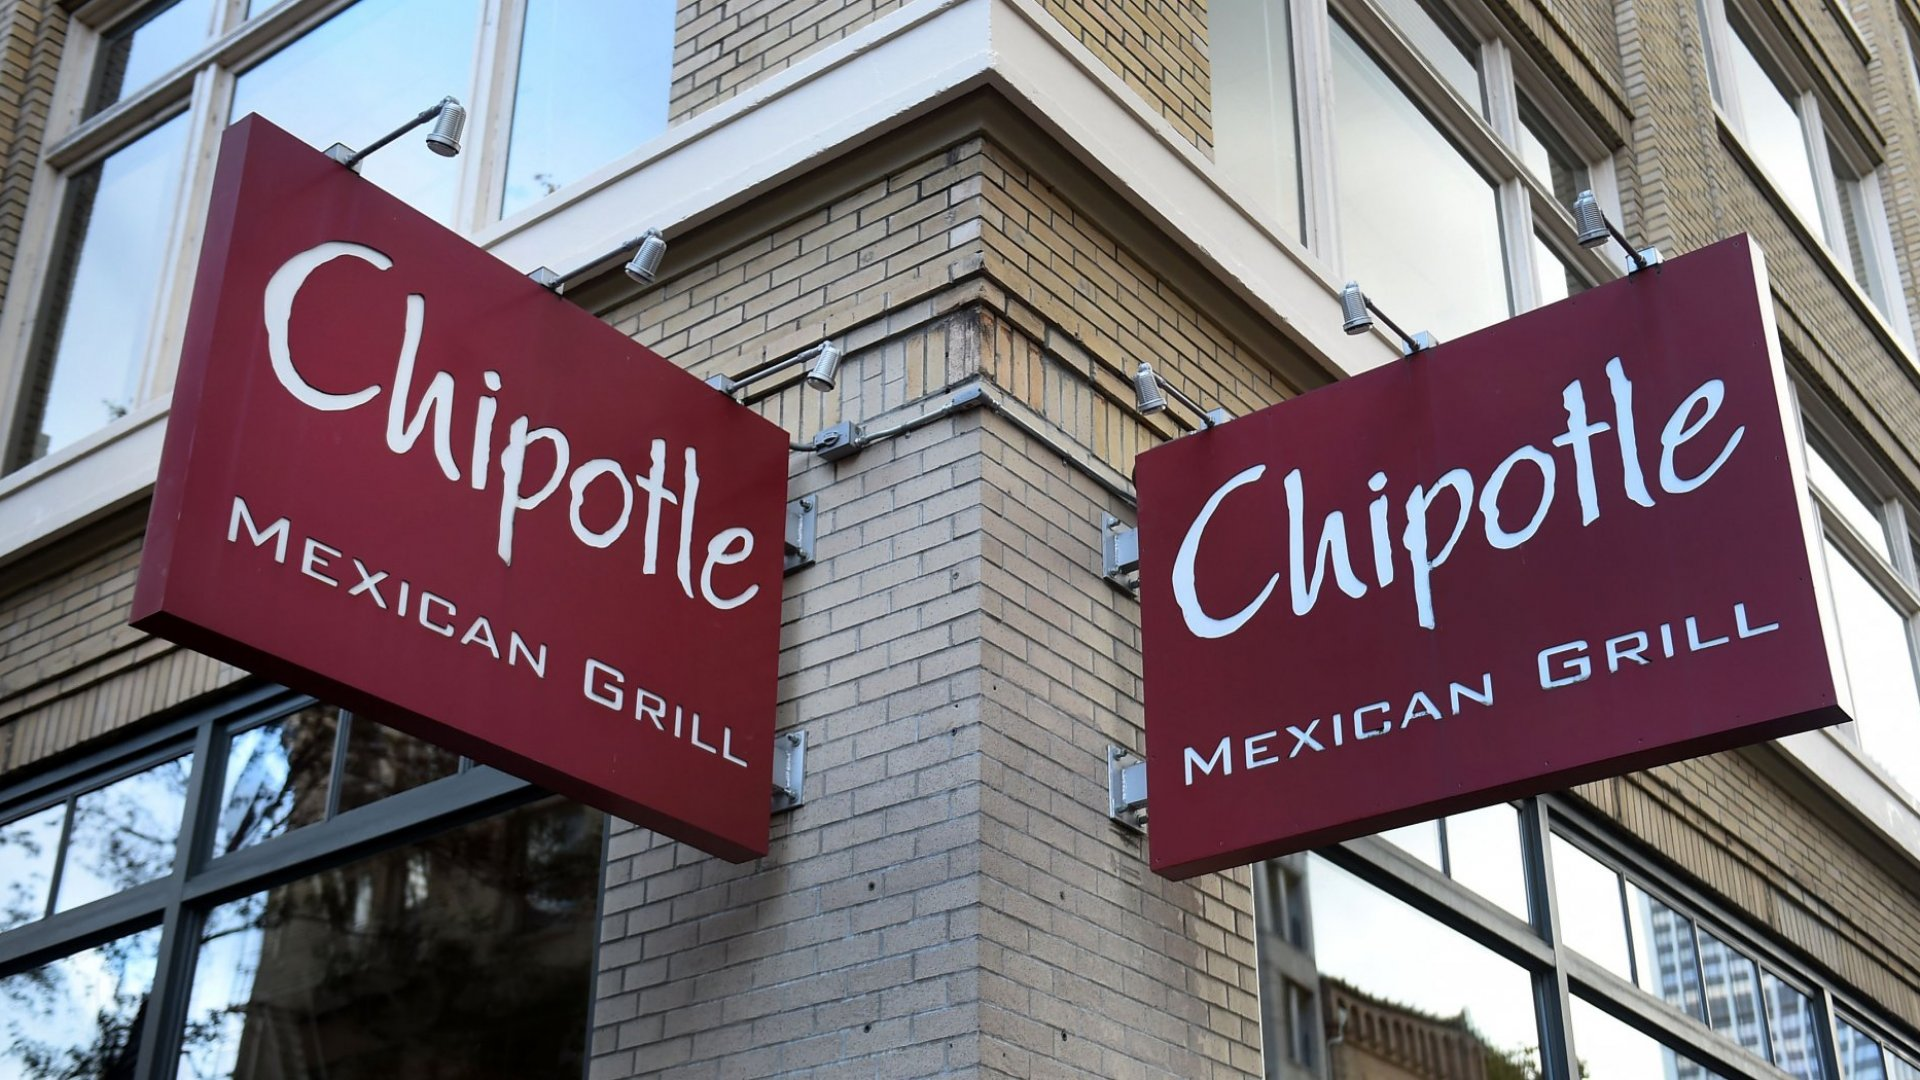 Chipotle Just Made a Radical New Change. Is It Clever or or Just a Cliche?